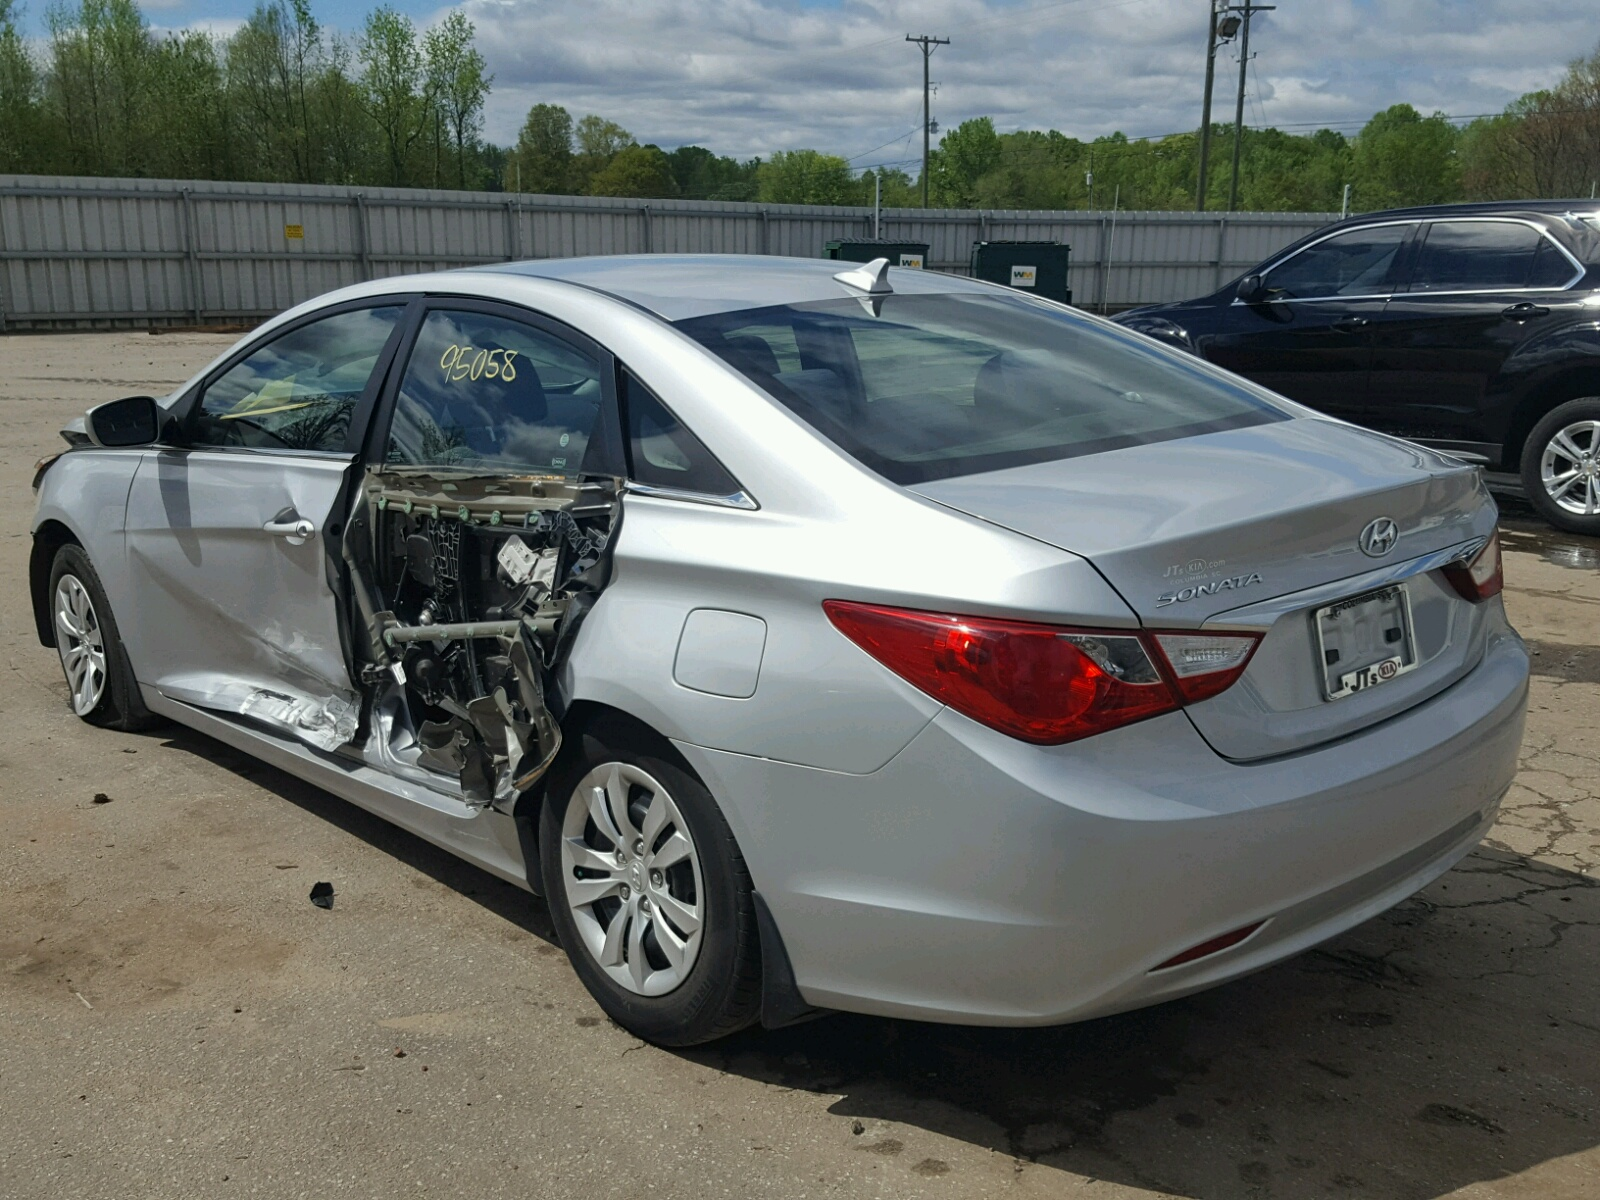 se online title copart sc right cert sonata in hyundai of view auctions carfinder silver salvage on en sale lot auto greer